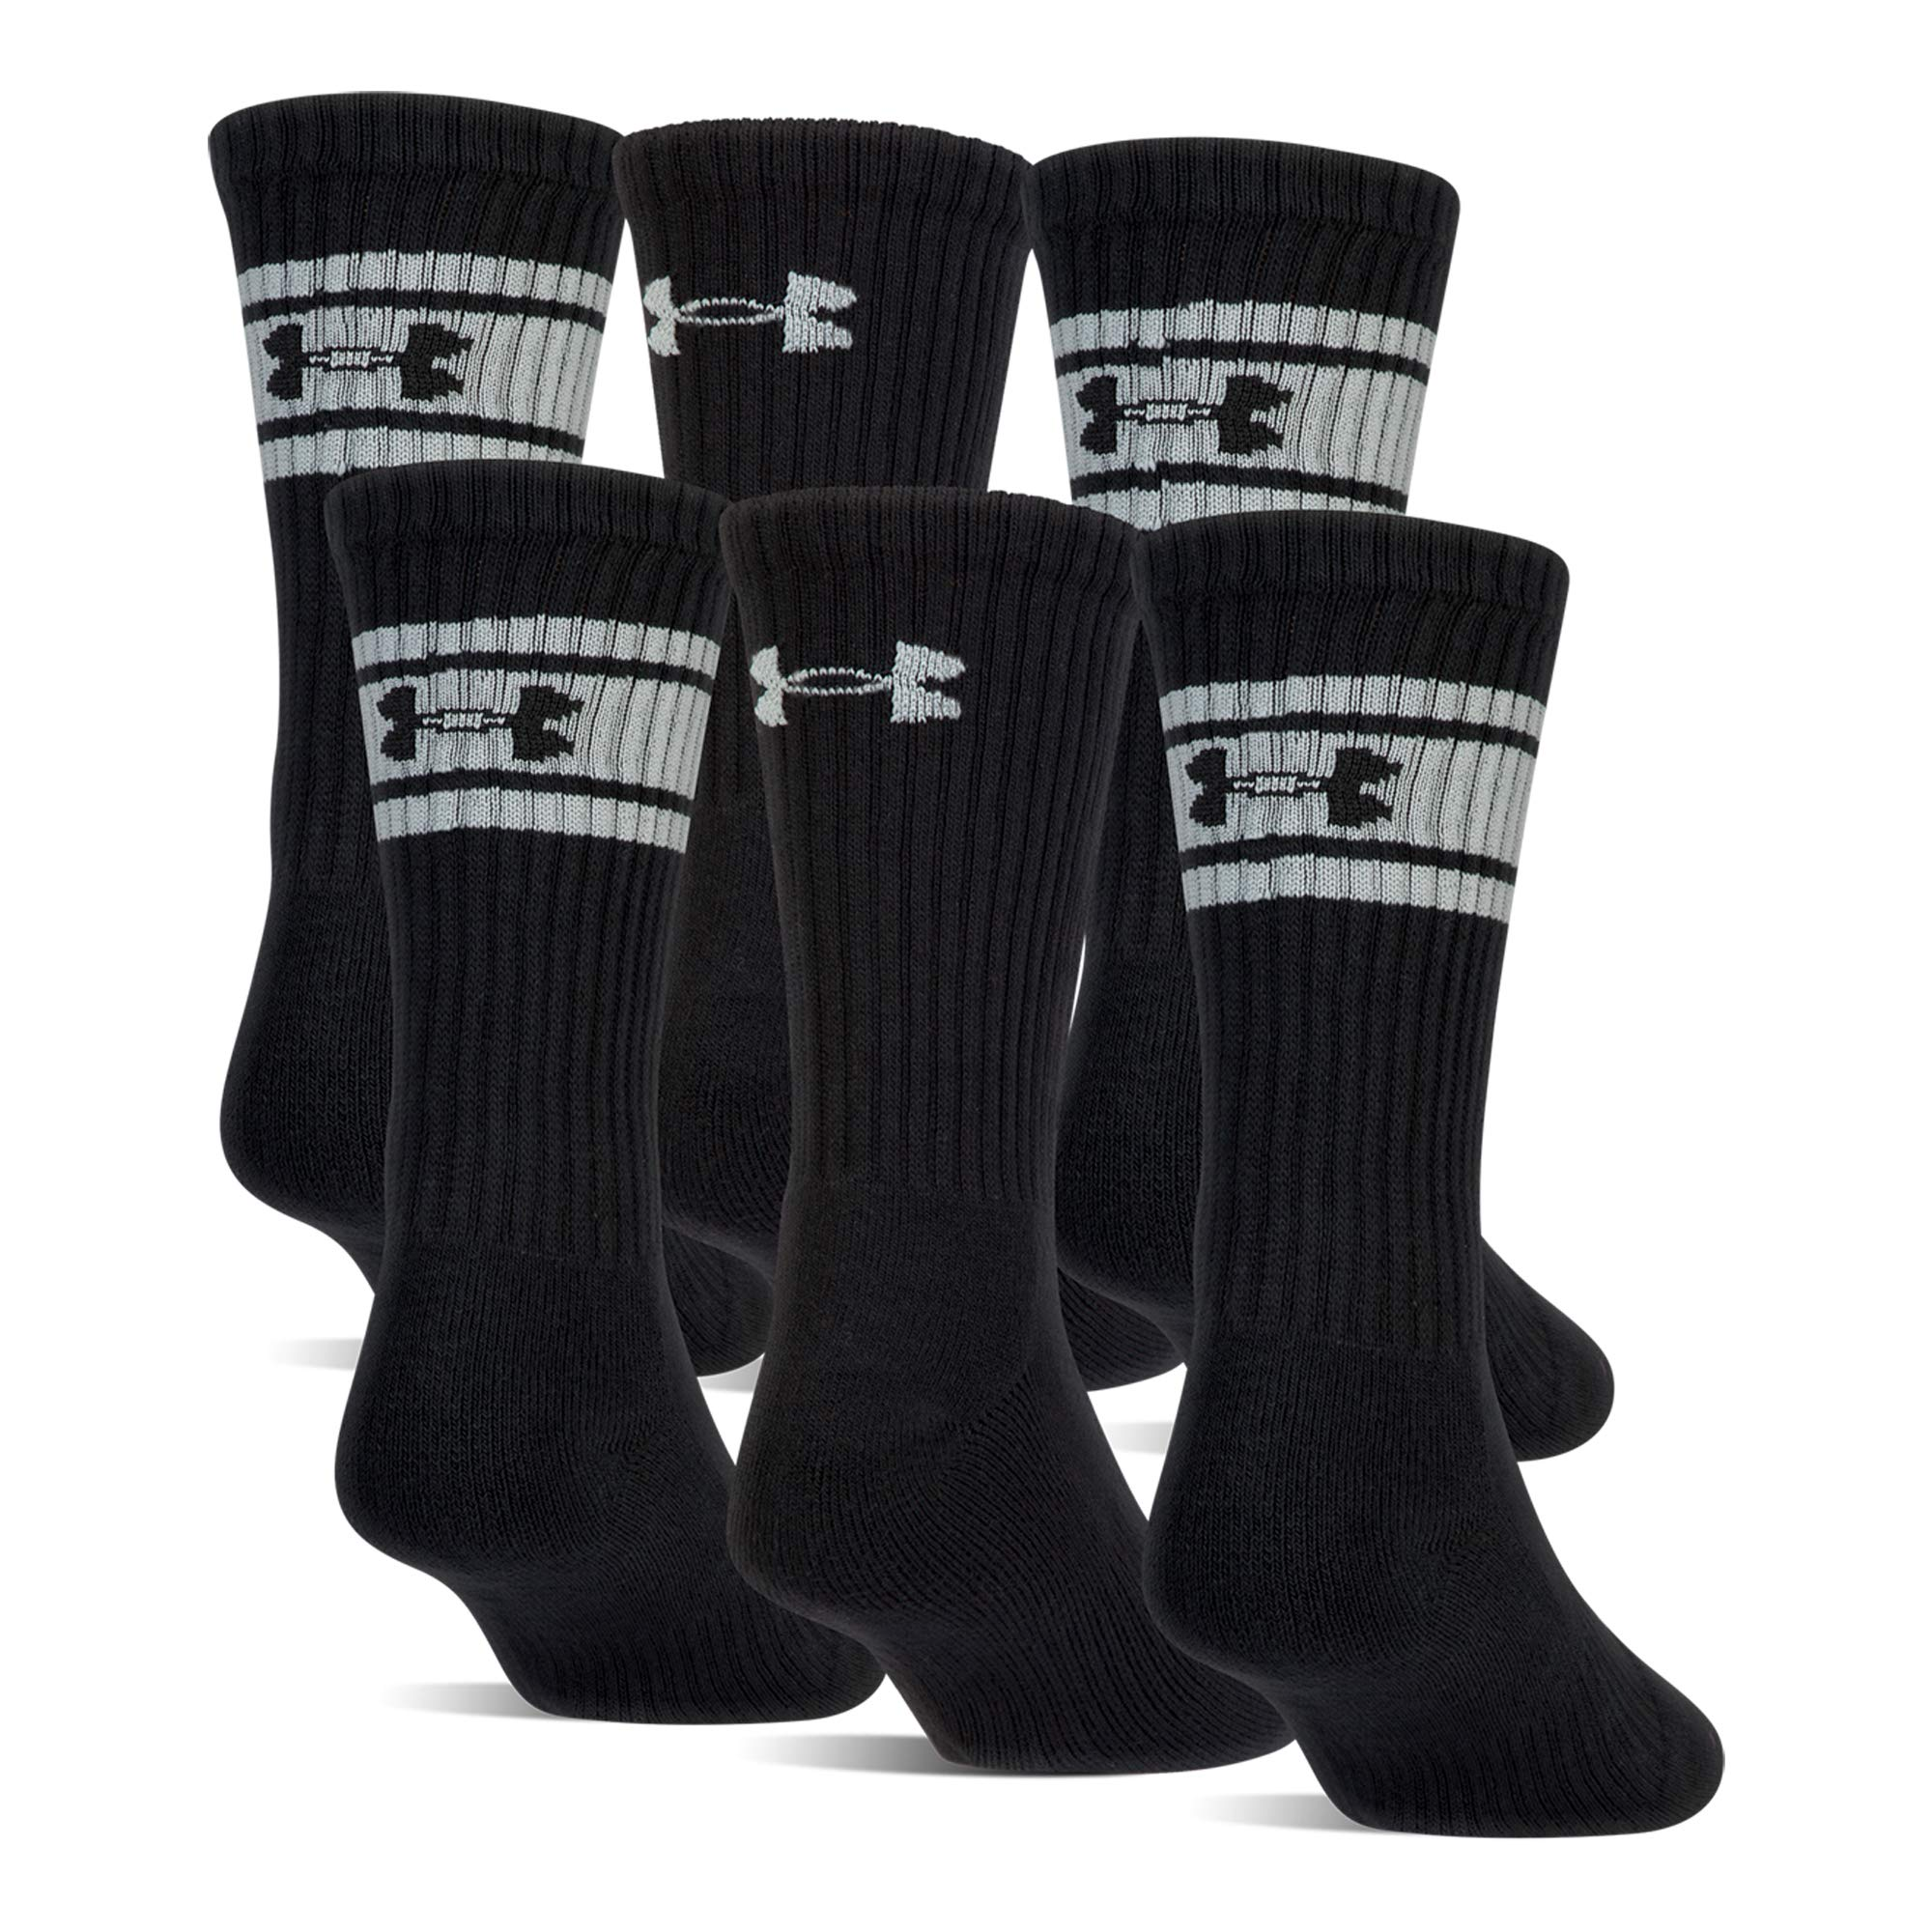 Under Armour Boy's Charged Cotton 2.0 Crew 6 Pack, Black/Gray, Youth Large by Under Armour